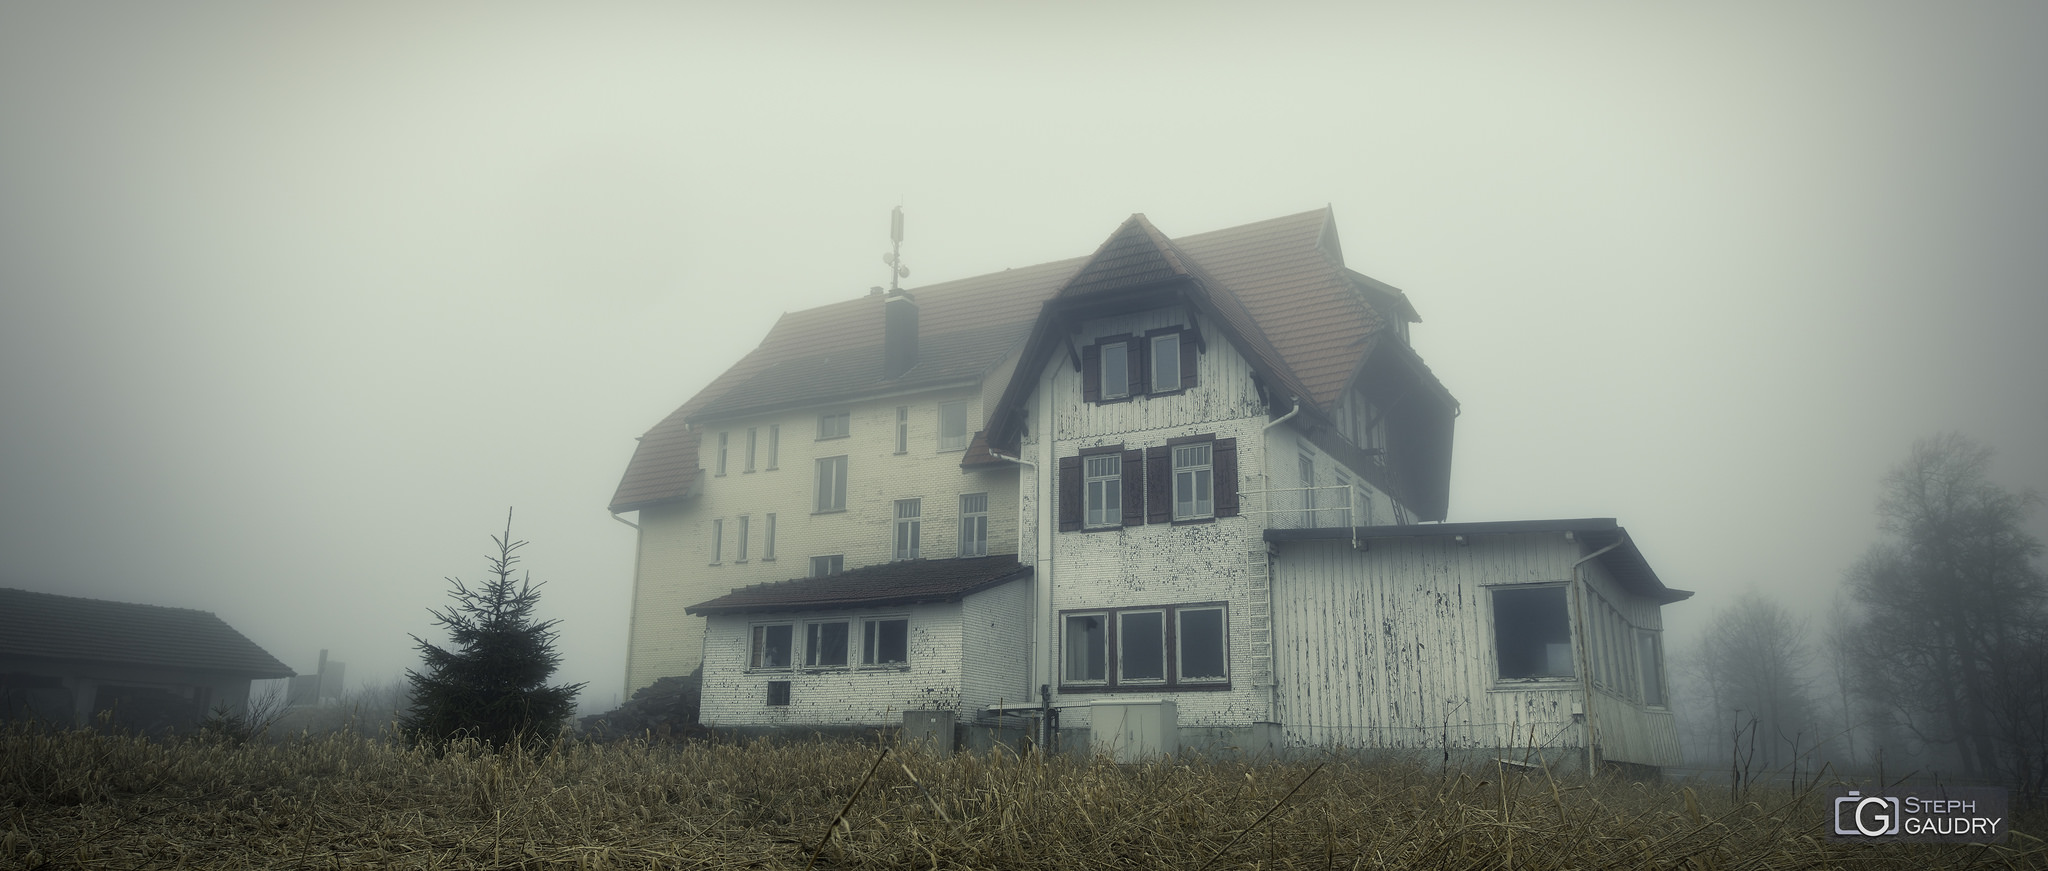 Haunted house in the mist